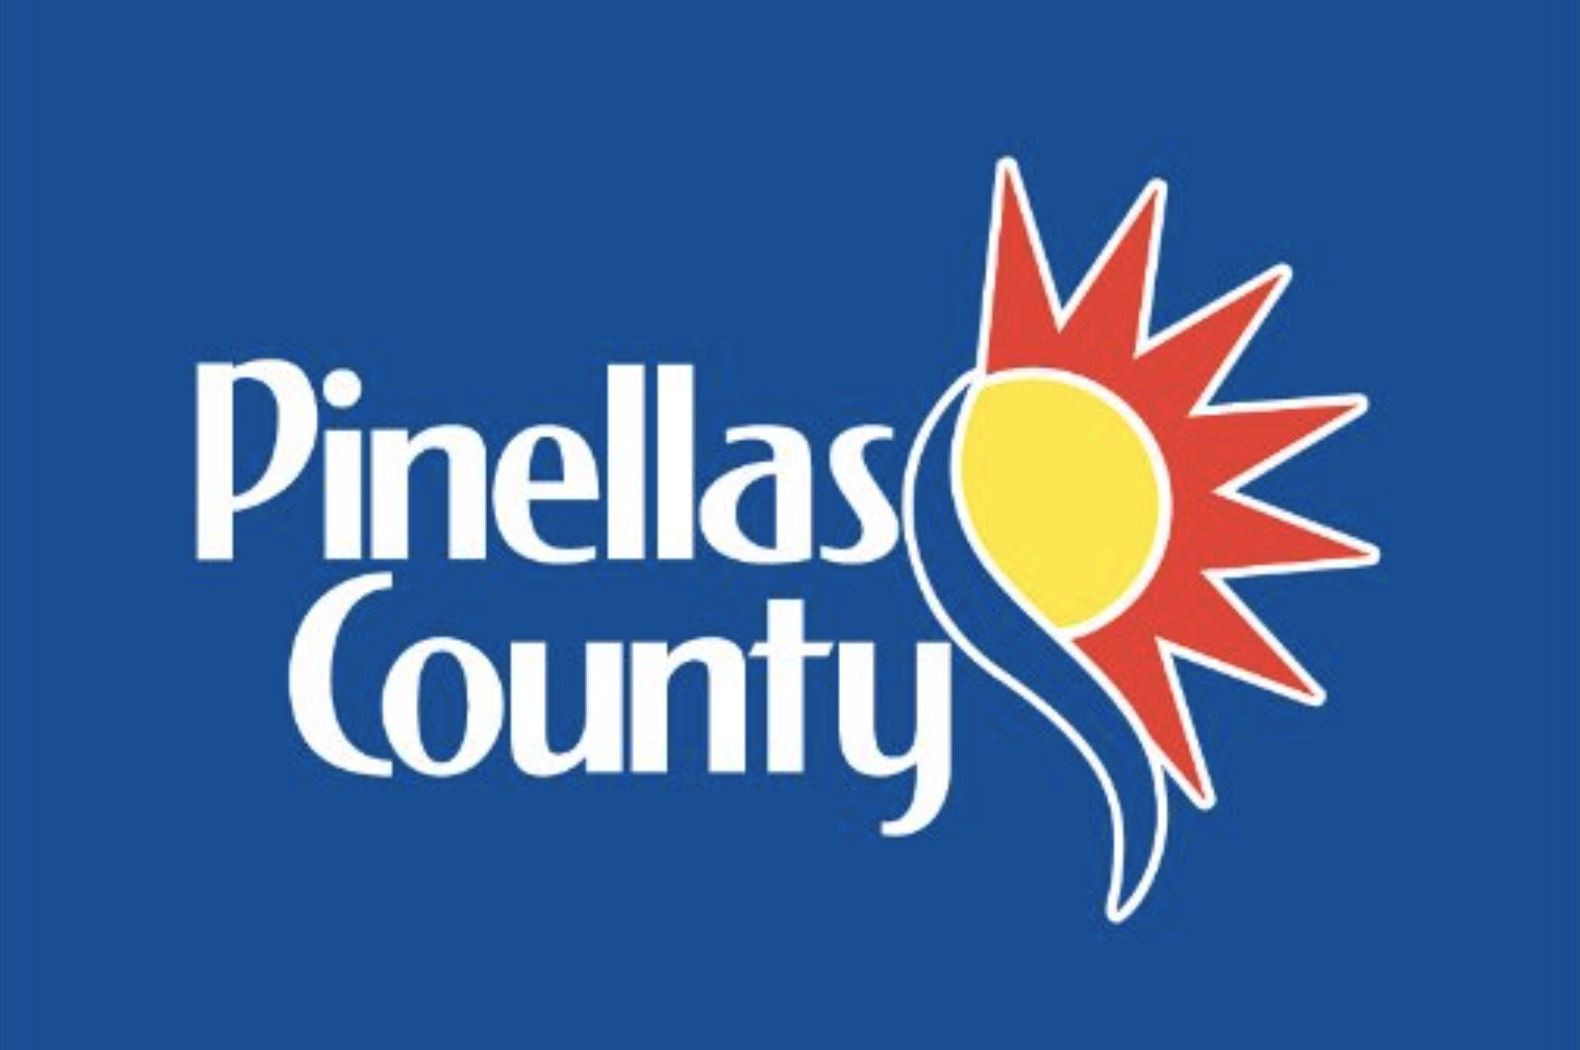 """The logo for Pinellas County Florida featuring a sun drawing and the words """"Pinellas County"""" in white on a blue drawing."""